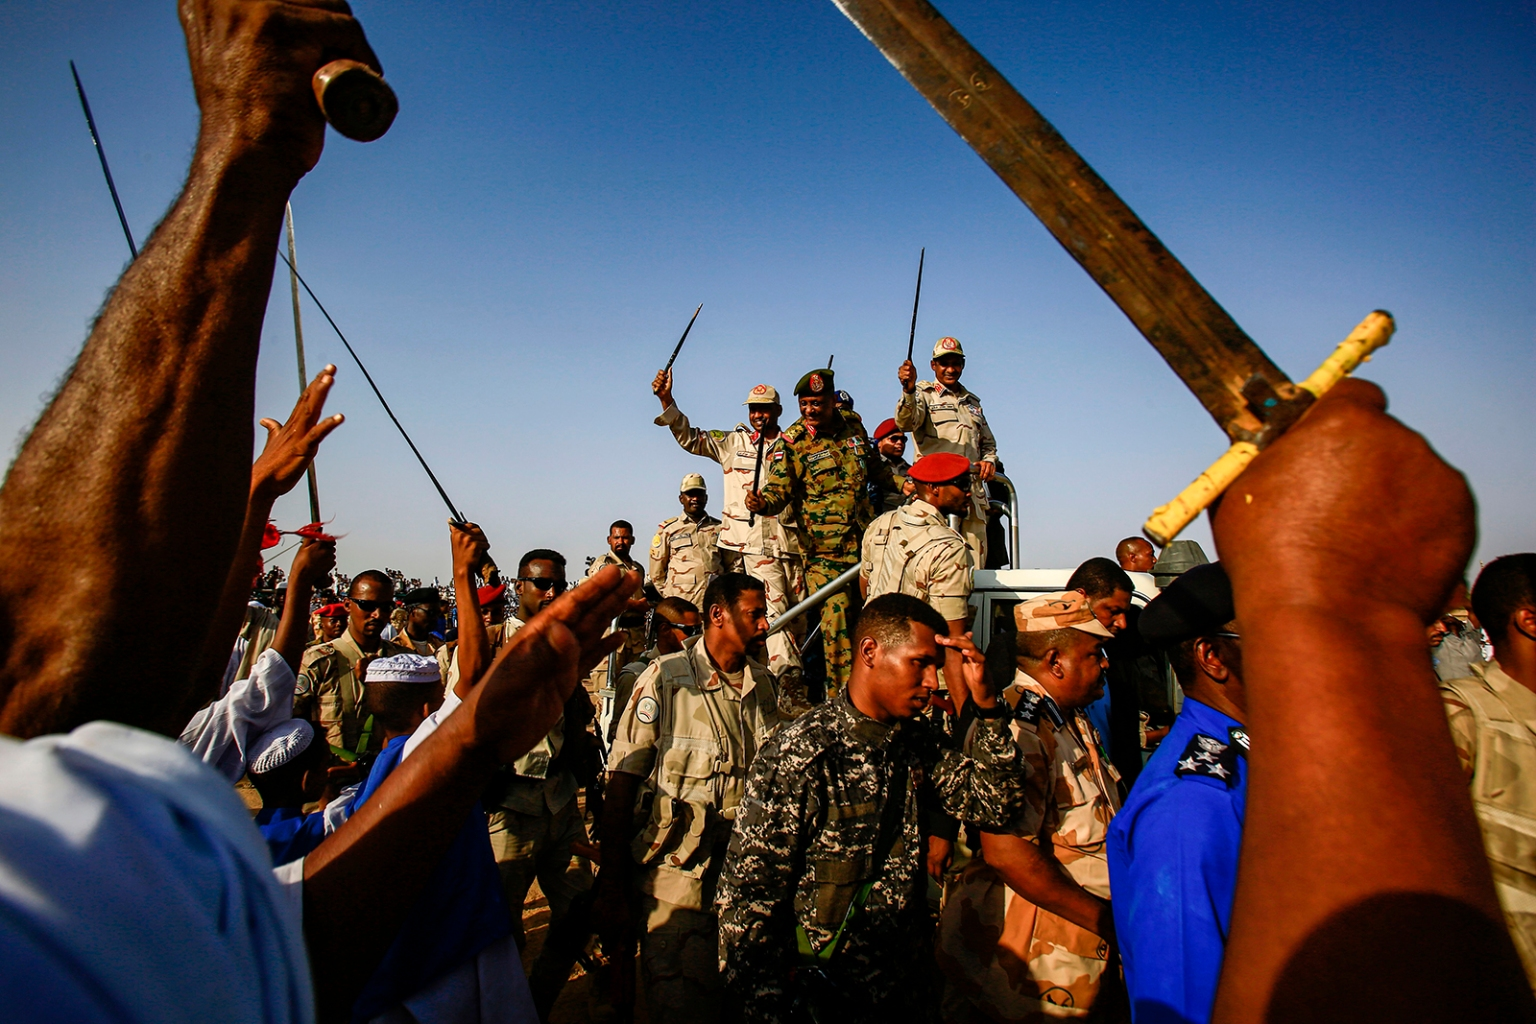 Mohamed Hamdan Dagalo, also known as Himediti, commander of the Rapid Support Forces (RSF) paramilitaries, waves a baton as he rides in the back of a vehicle surrounded by RSF members and crowds of supporters in the village of Qarri, Sudan, on June 15. ASHRAF SHAZLY/AFP/Getty Images